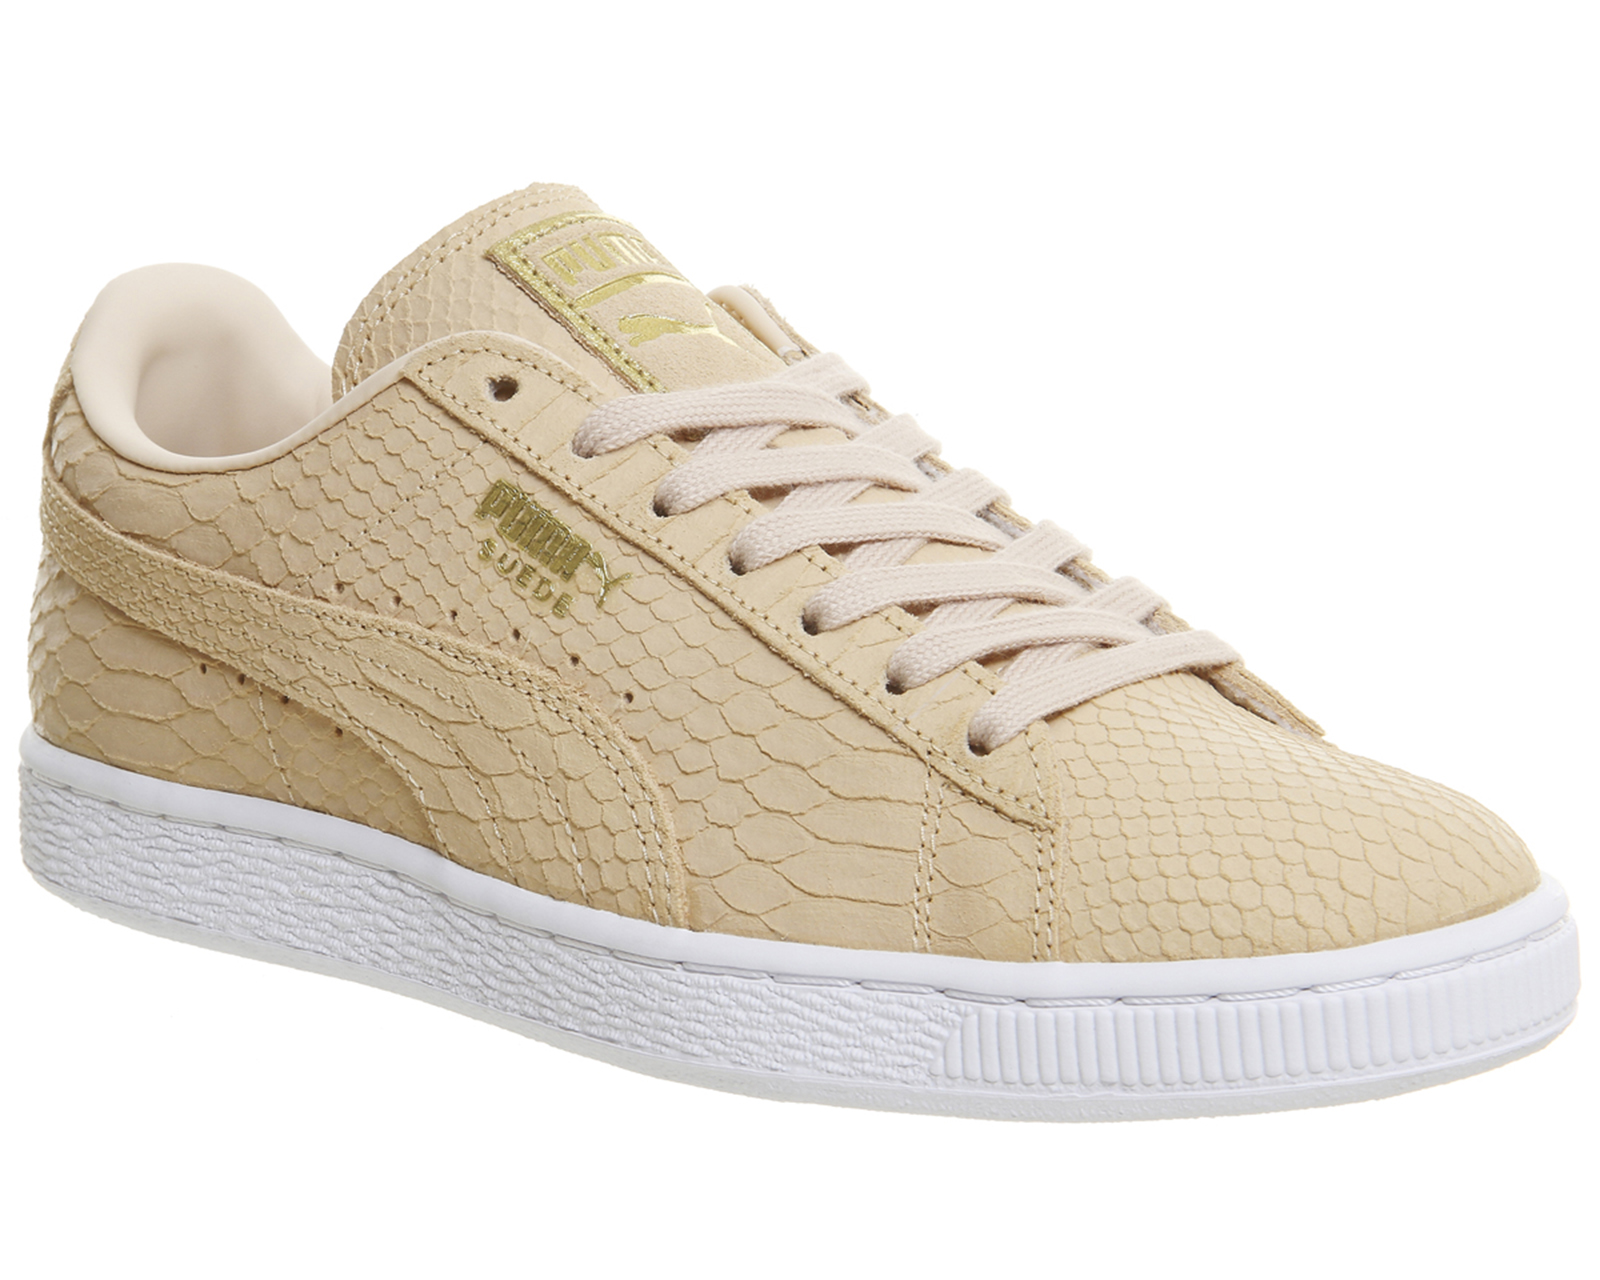 hot sale online 99963 9cd1e Details about Womens Puma Suede Classic NATURAL VACHETTA EXOTIC Trainers  Shoes